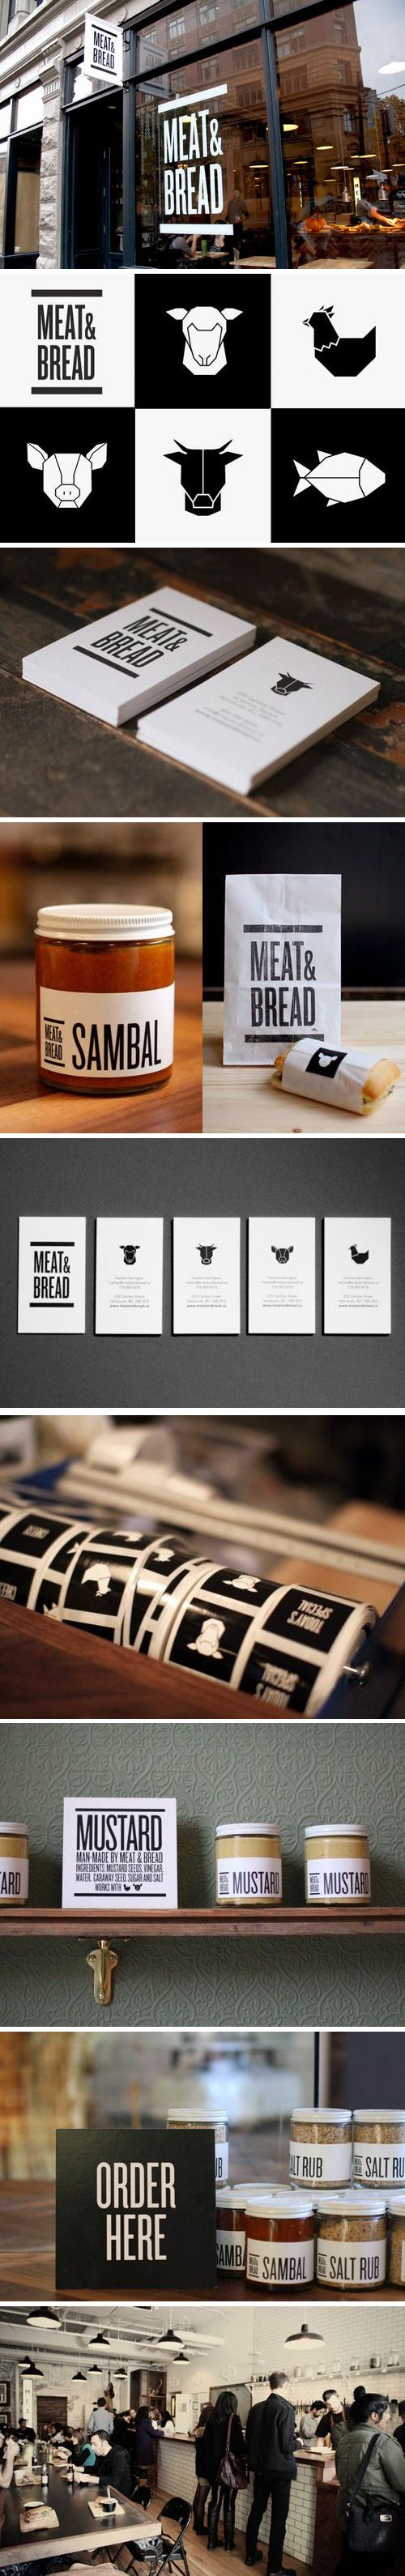 Meat & Bread. Quite a straightforward brand name. #branding #identity #design (Join design group board at https://www.pinterest.com/aldenchong/just-a-board-of-designs/)